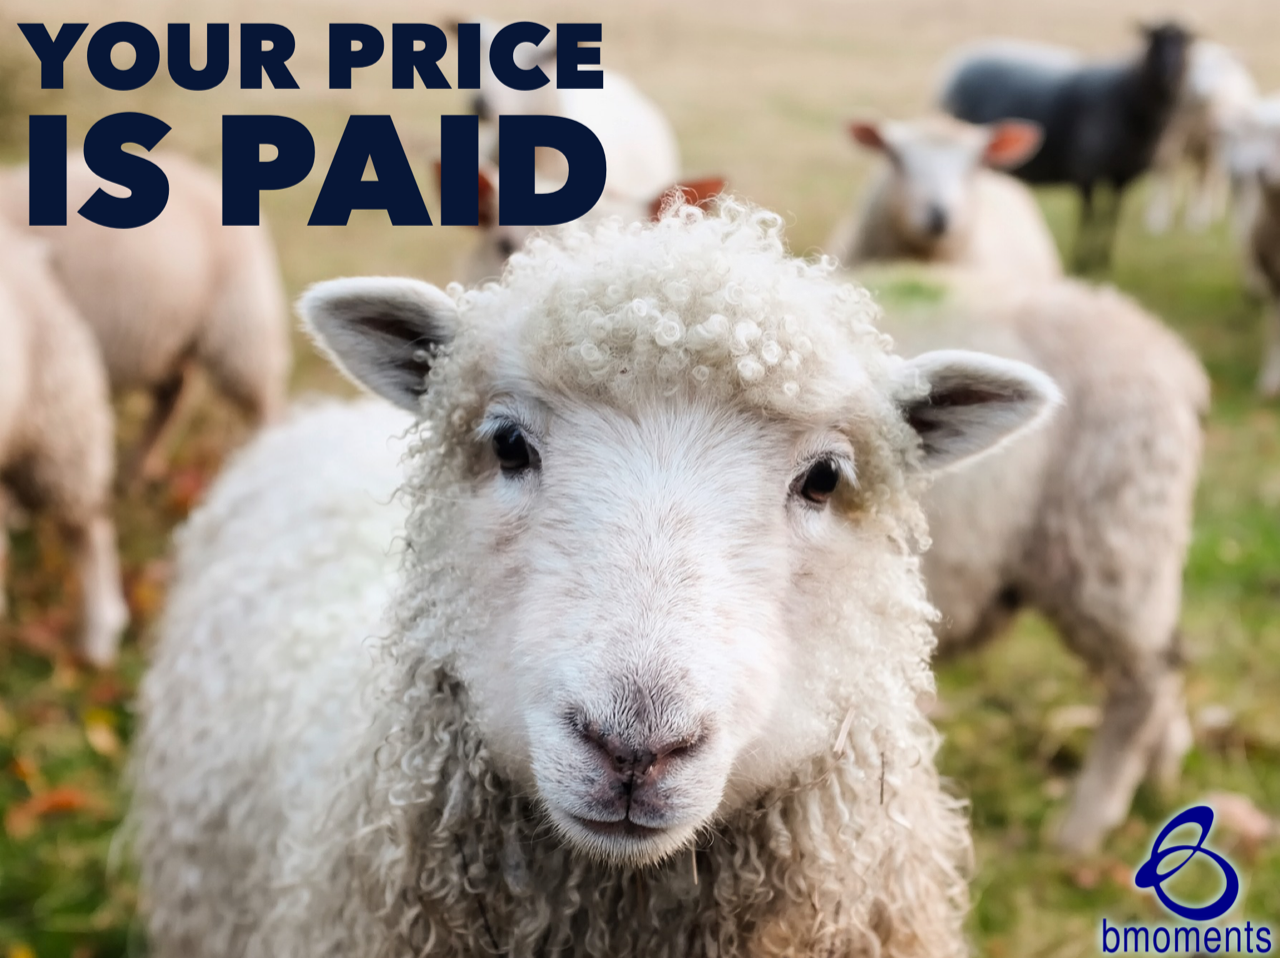 Don't Be Preoccupied: Your Price Is Already Paid